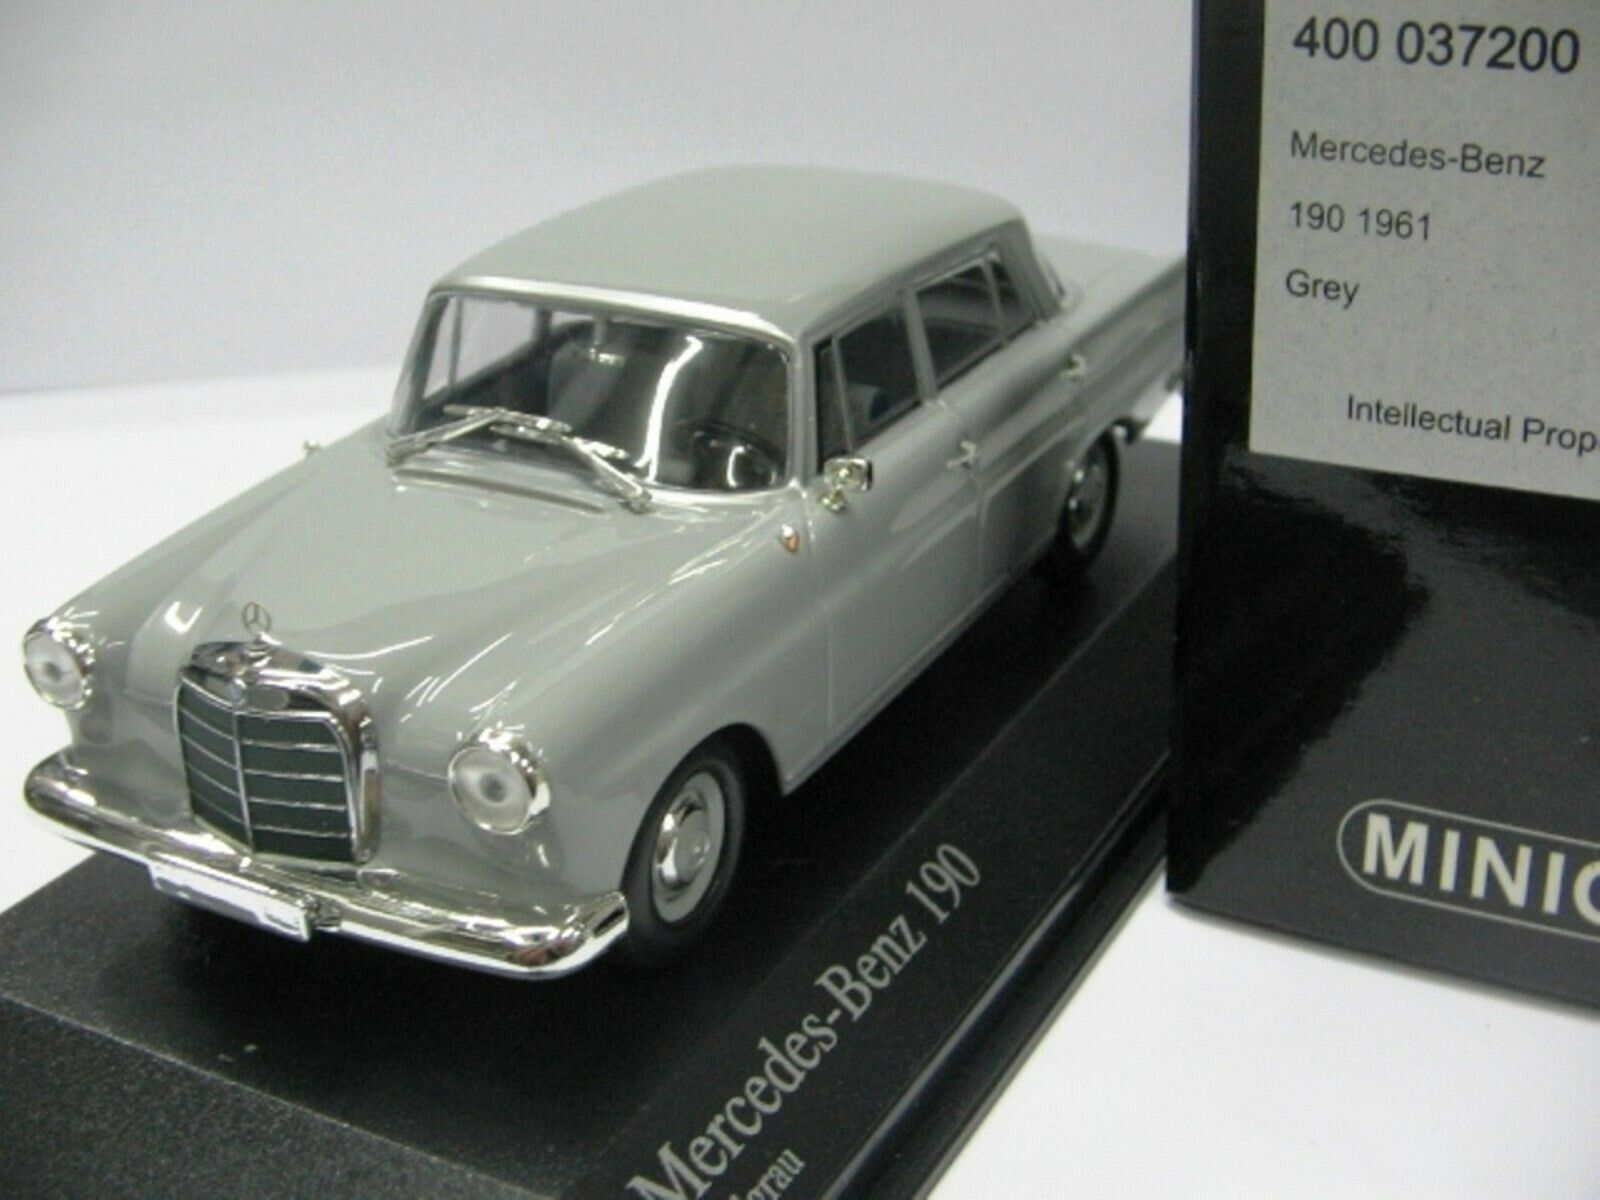 WOW EXTREMELY RARE Mercedes W110 190 1961 Grey 1 43 Minichamps-200,300,450,560